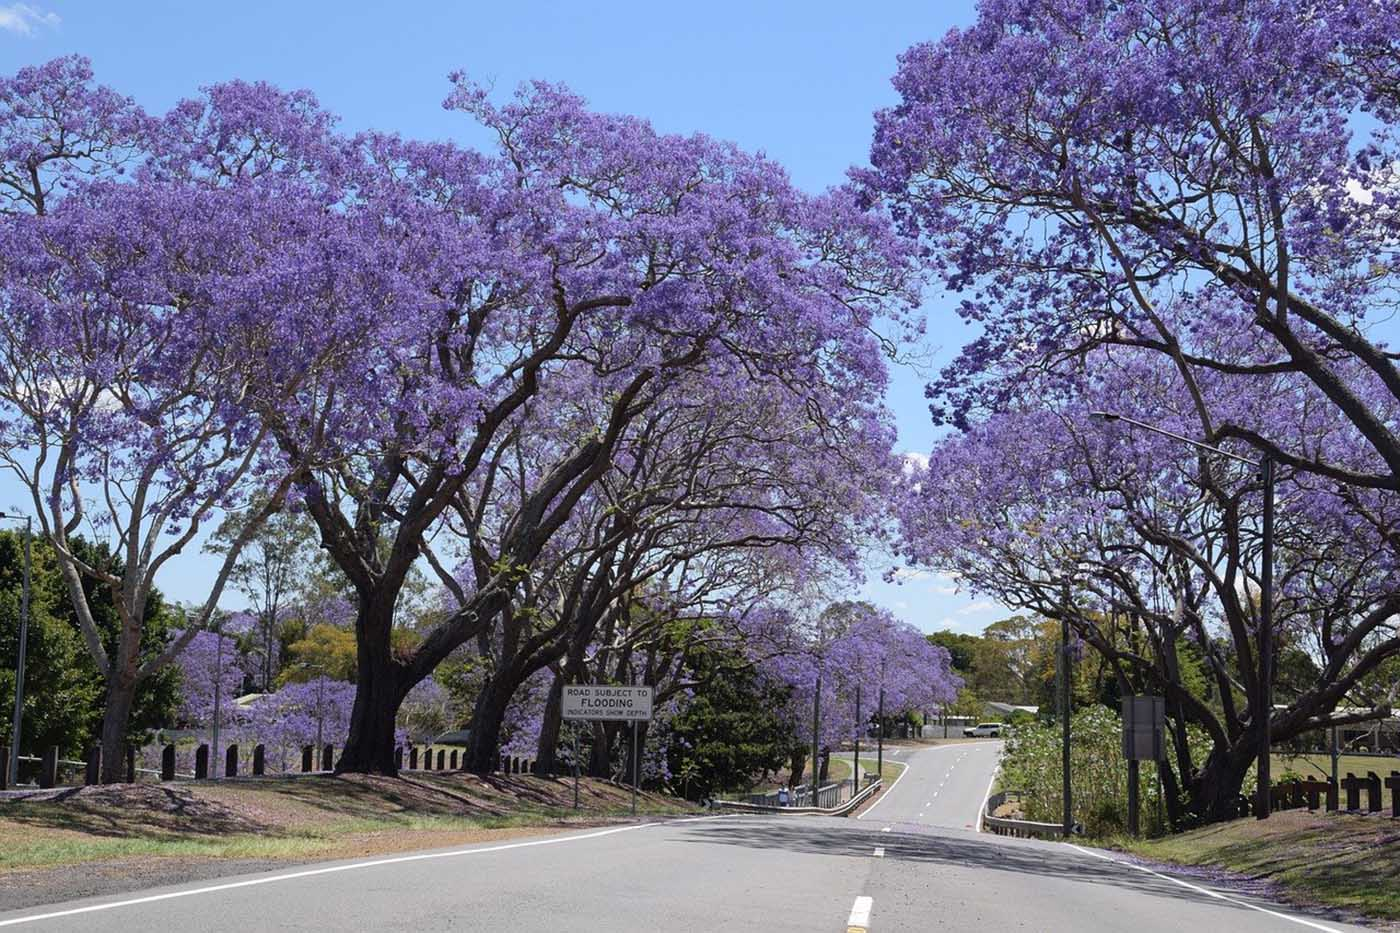 jacaranda trees either side a road